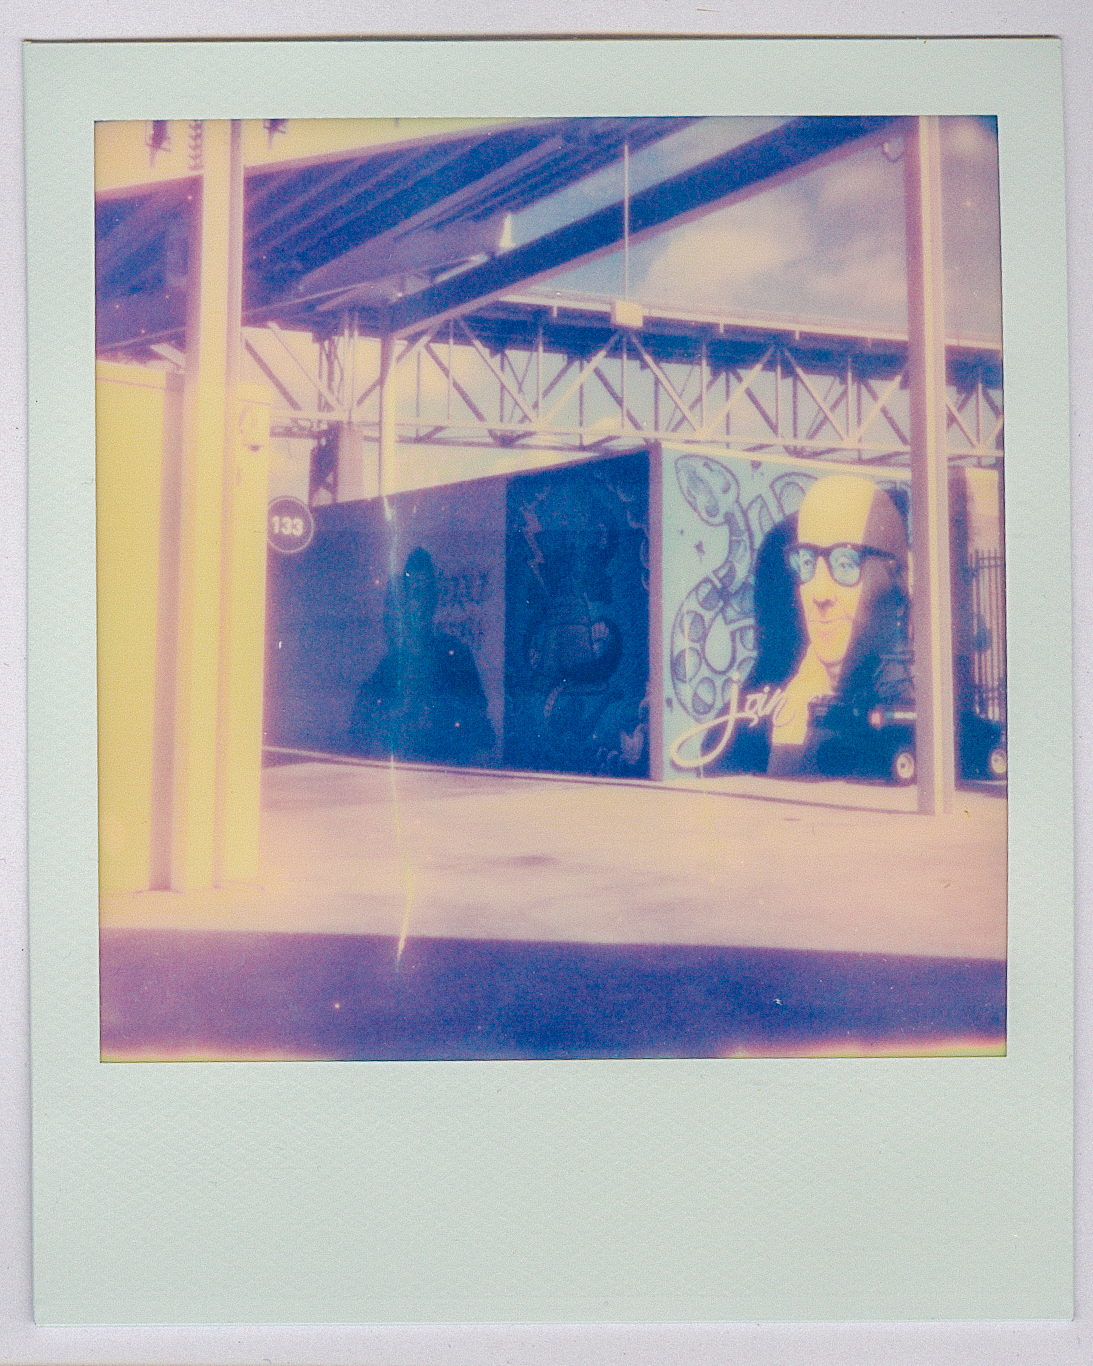 polaroid_2_EDIT.jpg